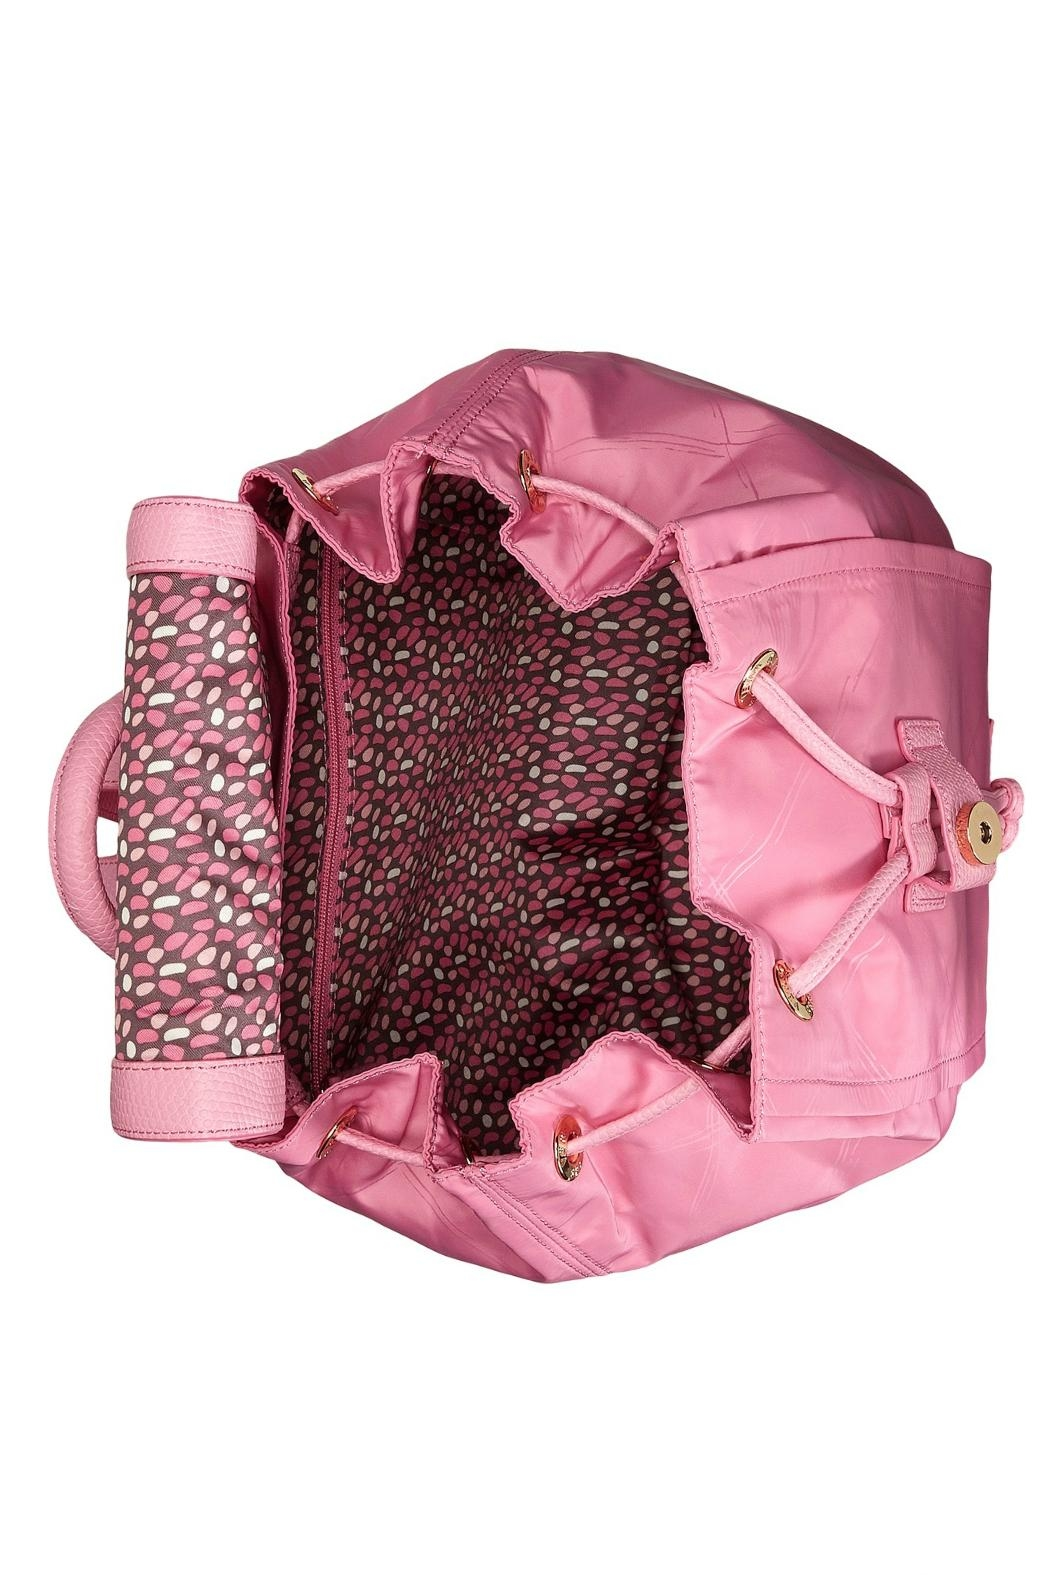 0249f1facfb Vera Bradley Pink Preppy Poly from Kentucky by Mimi s Gift Gallery ...